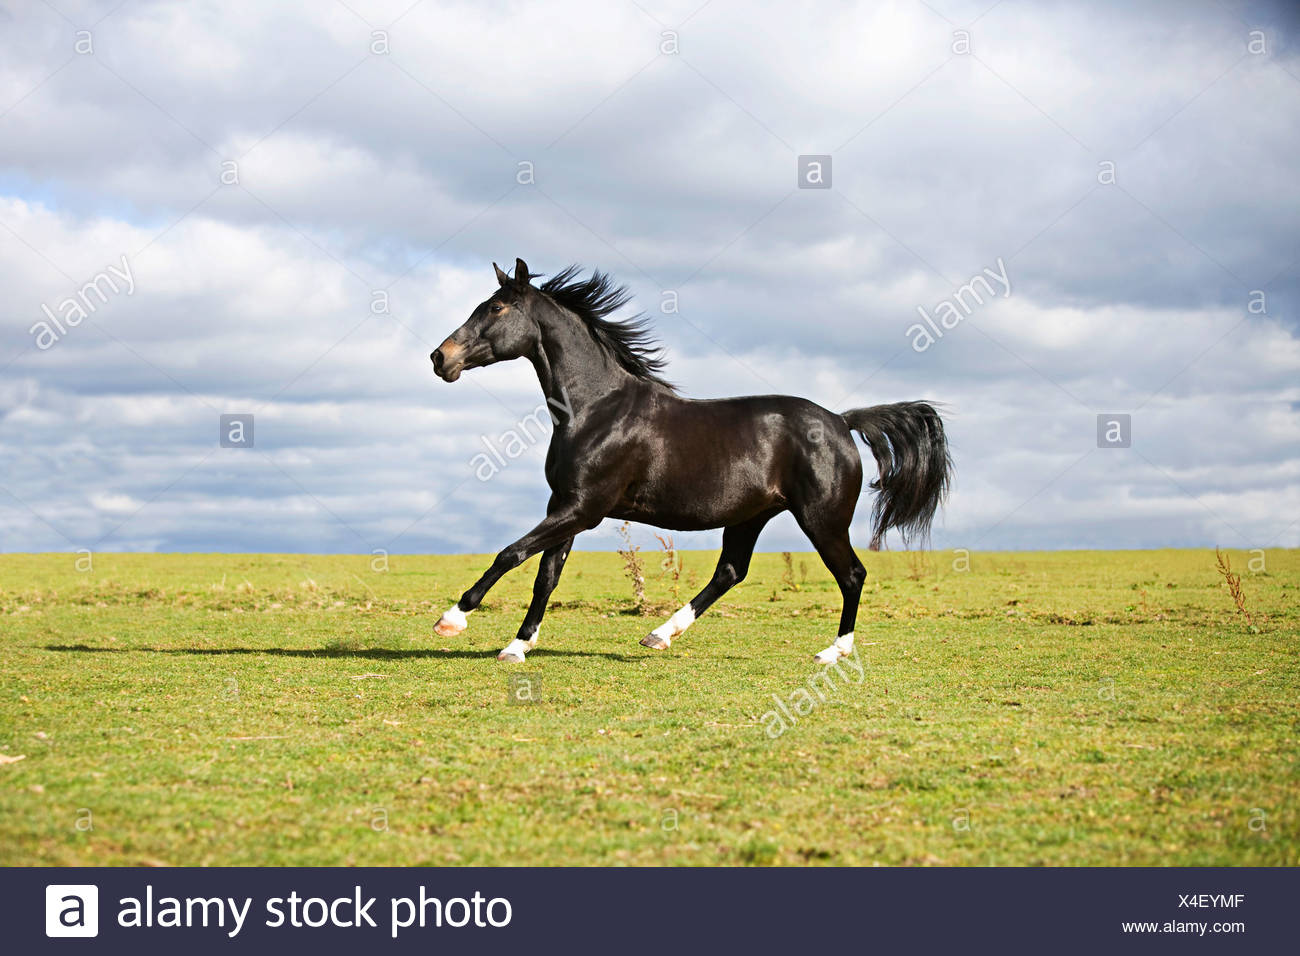 Black Horse Running High Resolution Stock Photography And Images Alamy